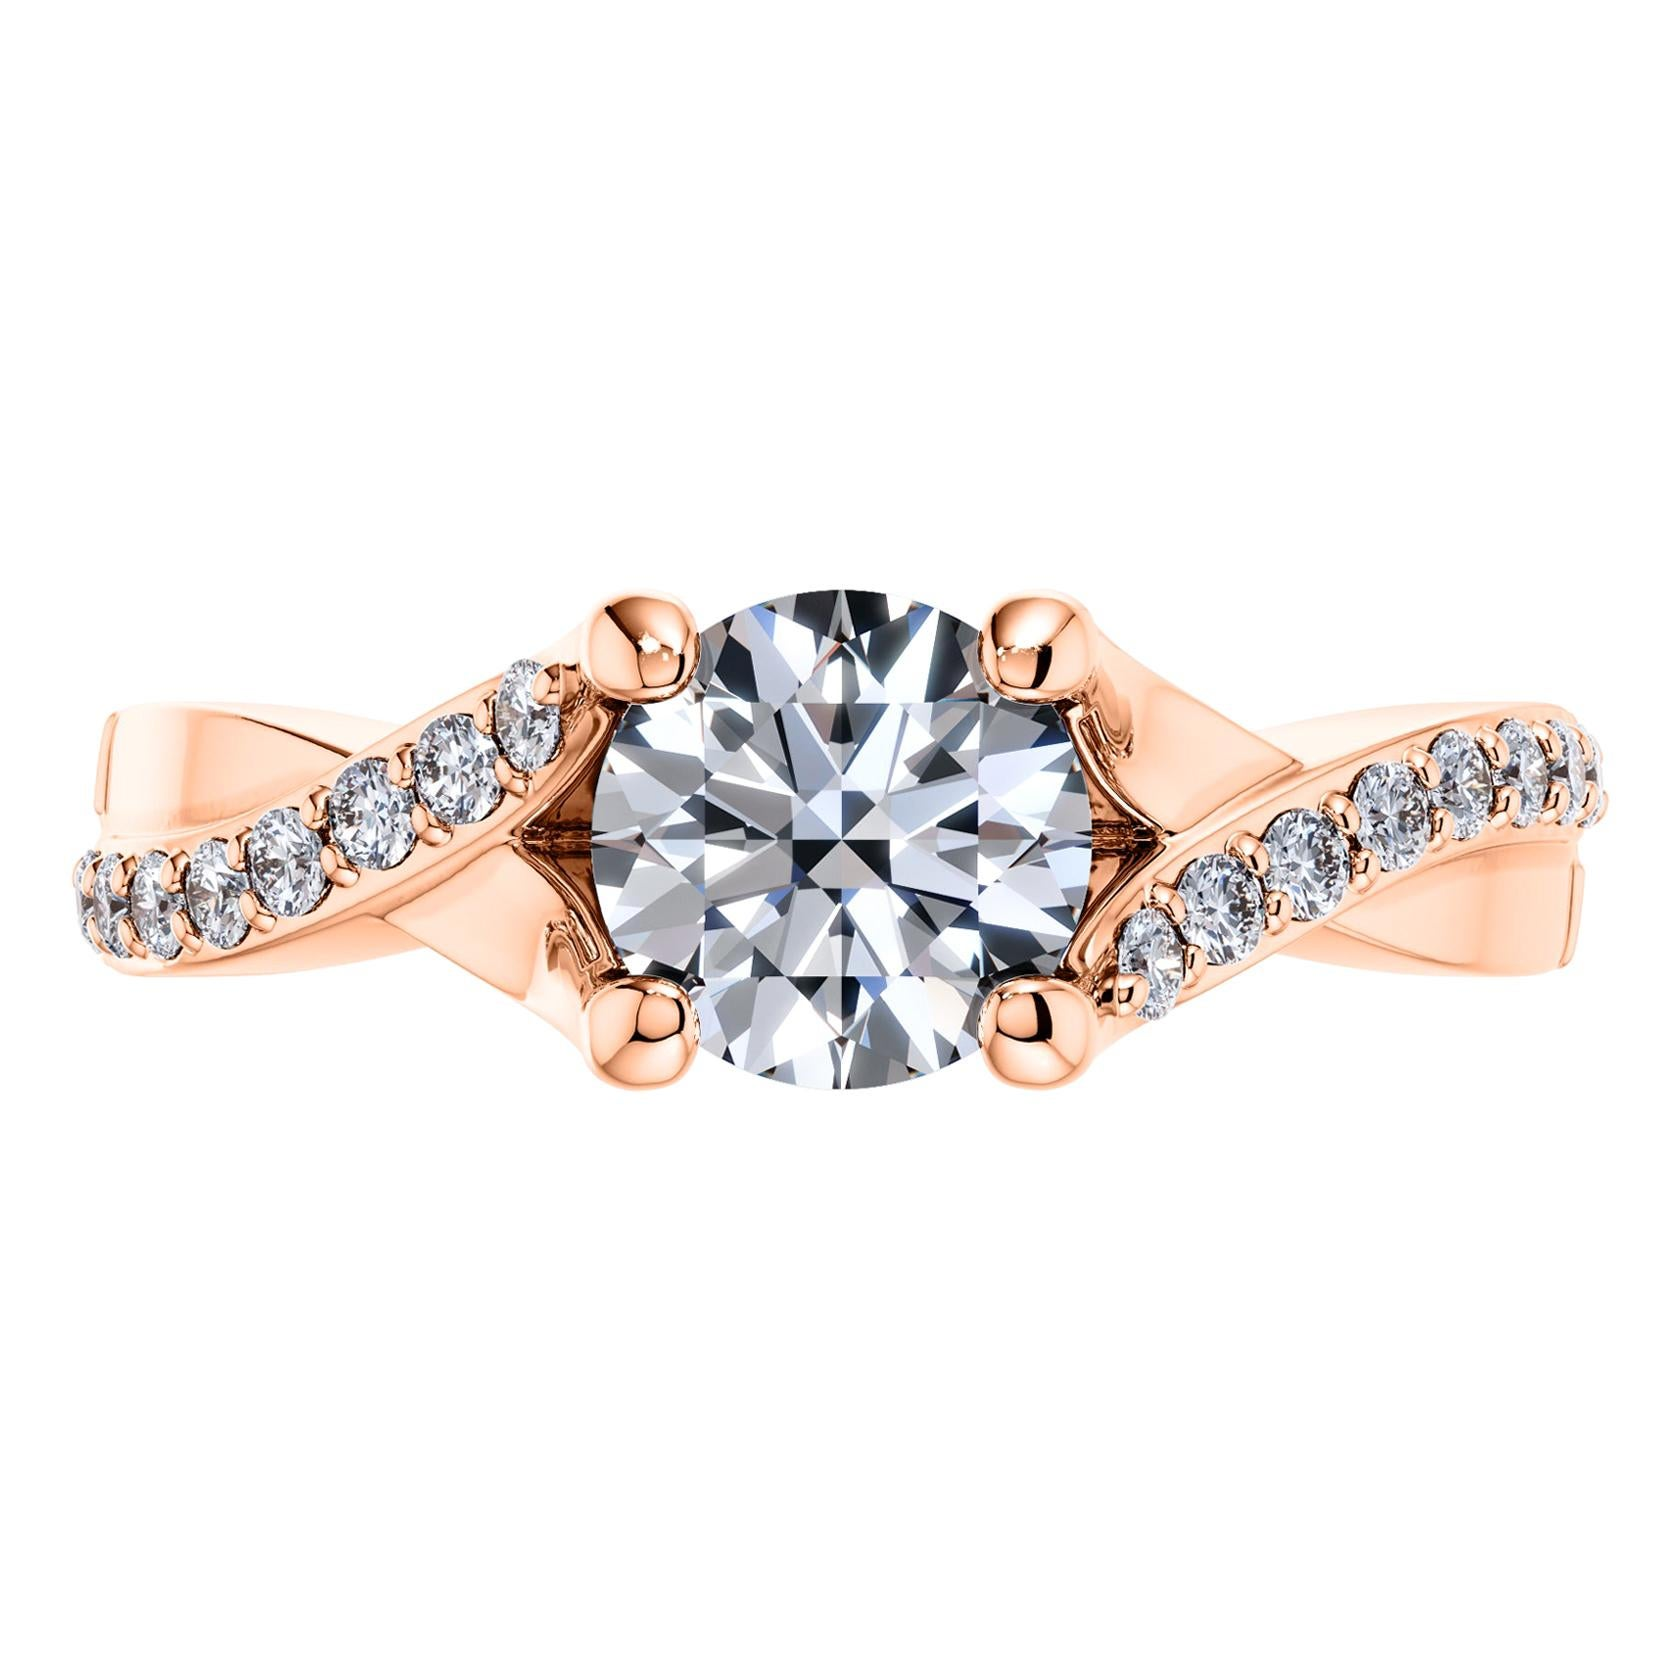 0.95 Carat Round Diamond Twisted 18 Karat Rose Gold 4 Prong Love Engagement Ring